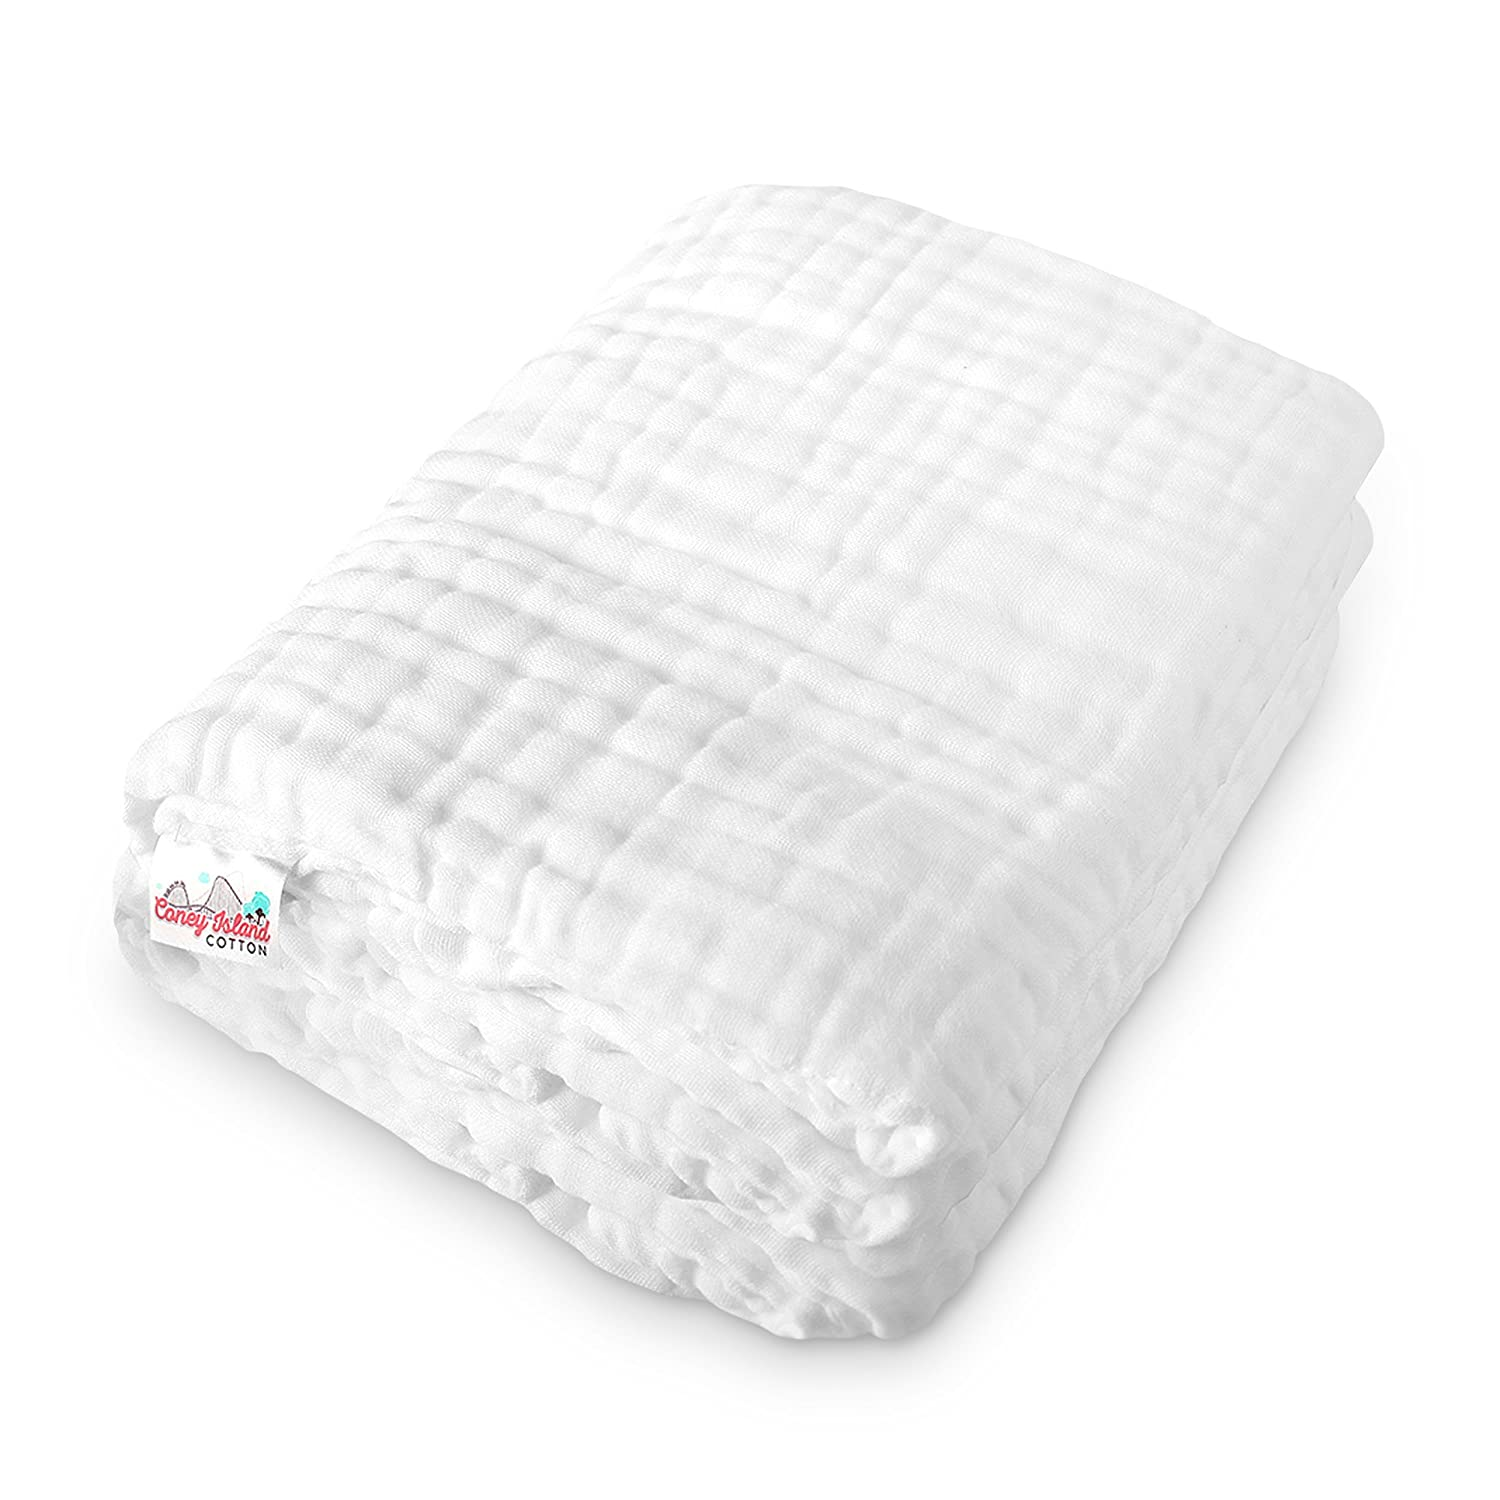 45 x 45 Inch Warm Soft /& Fluffy Muslin 6 Layer Multi Use Baby Towel /& Blanket Coney Island Cotton All-Natural Material /& Antibacterial Large White Super Absorbent